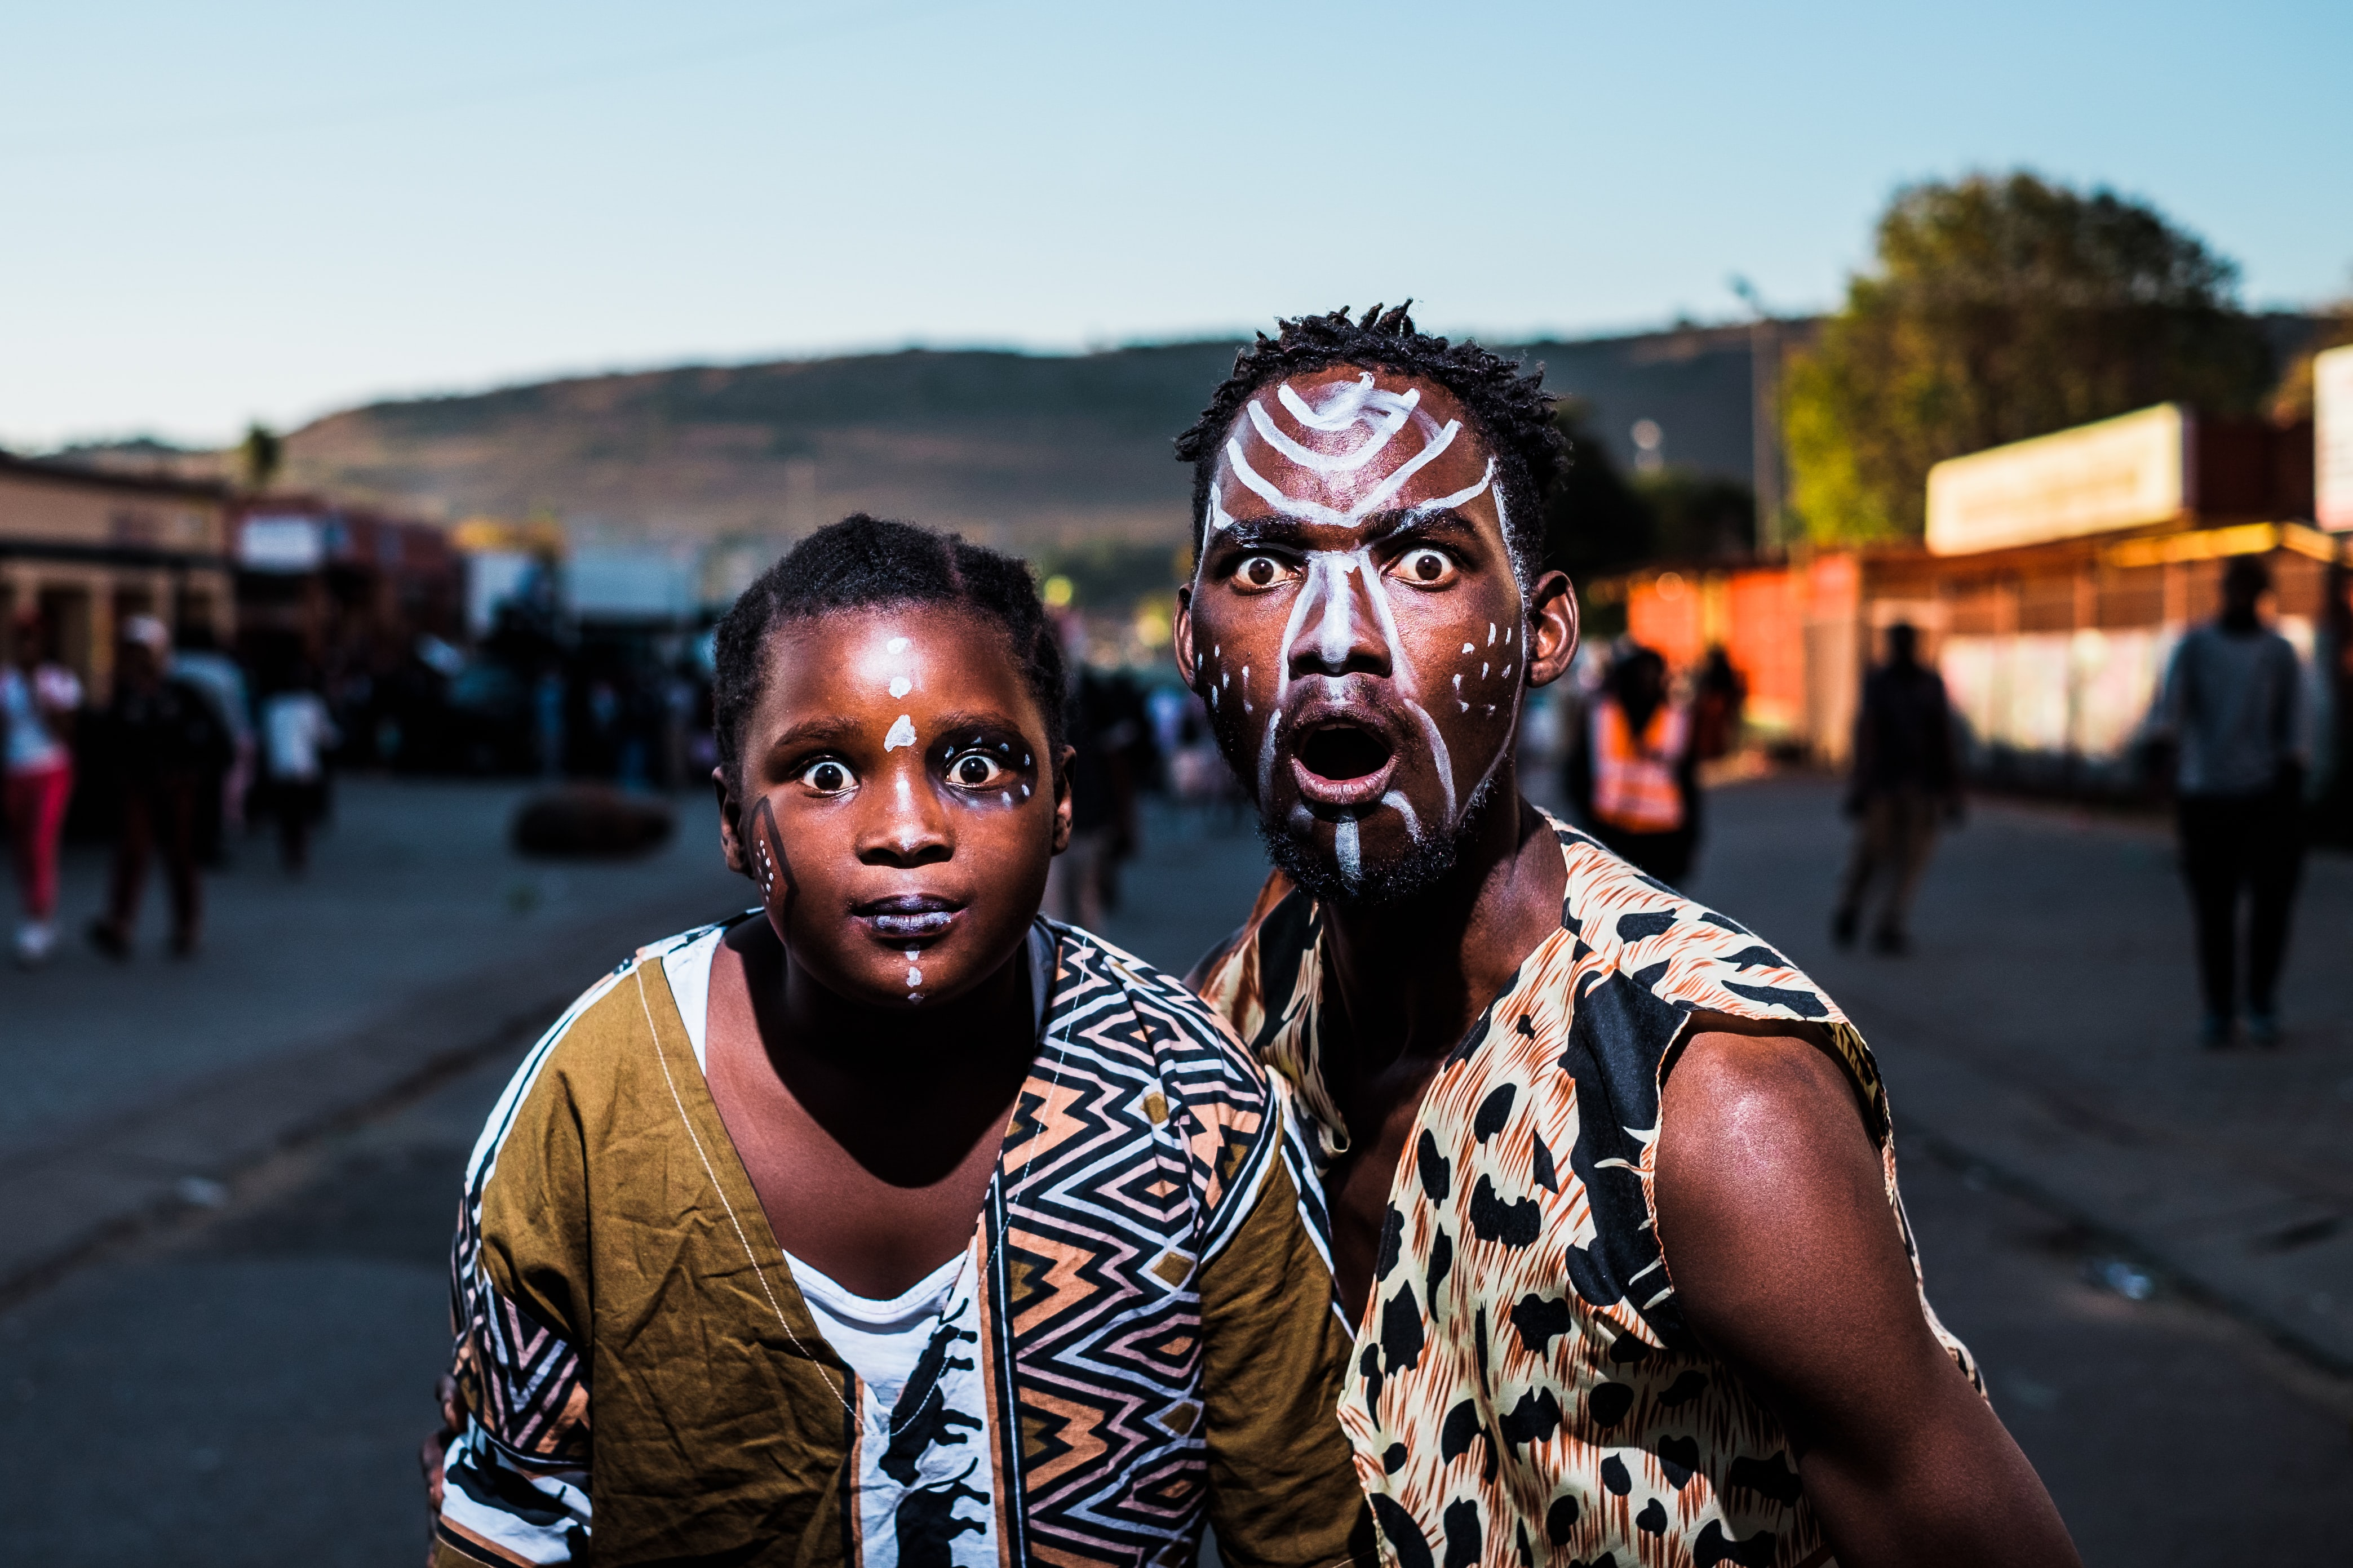 Young people in tribal face paint at a street celebration in South Africa